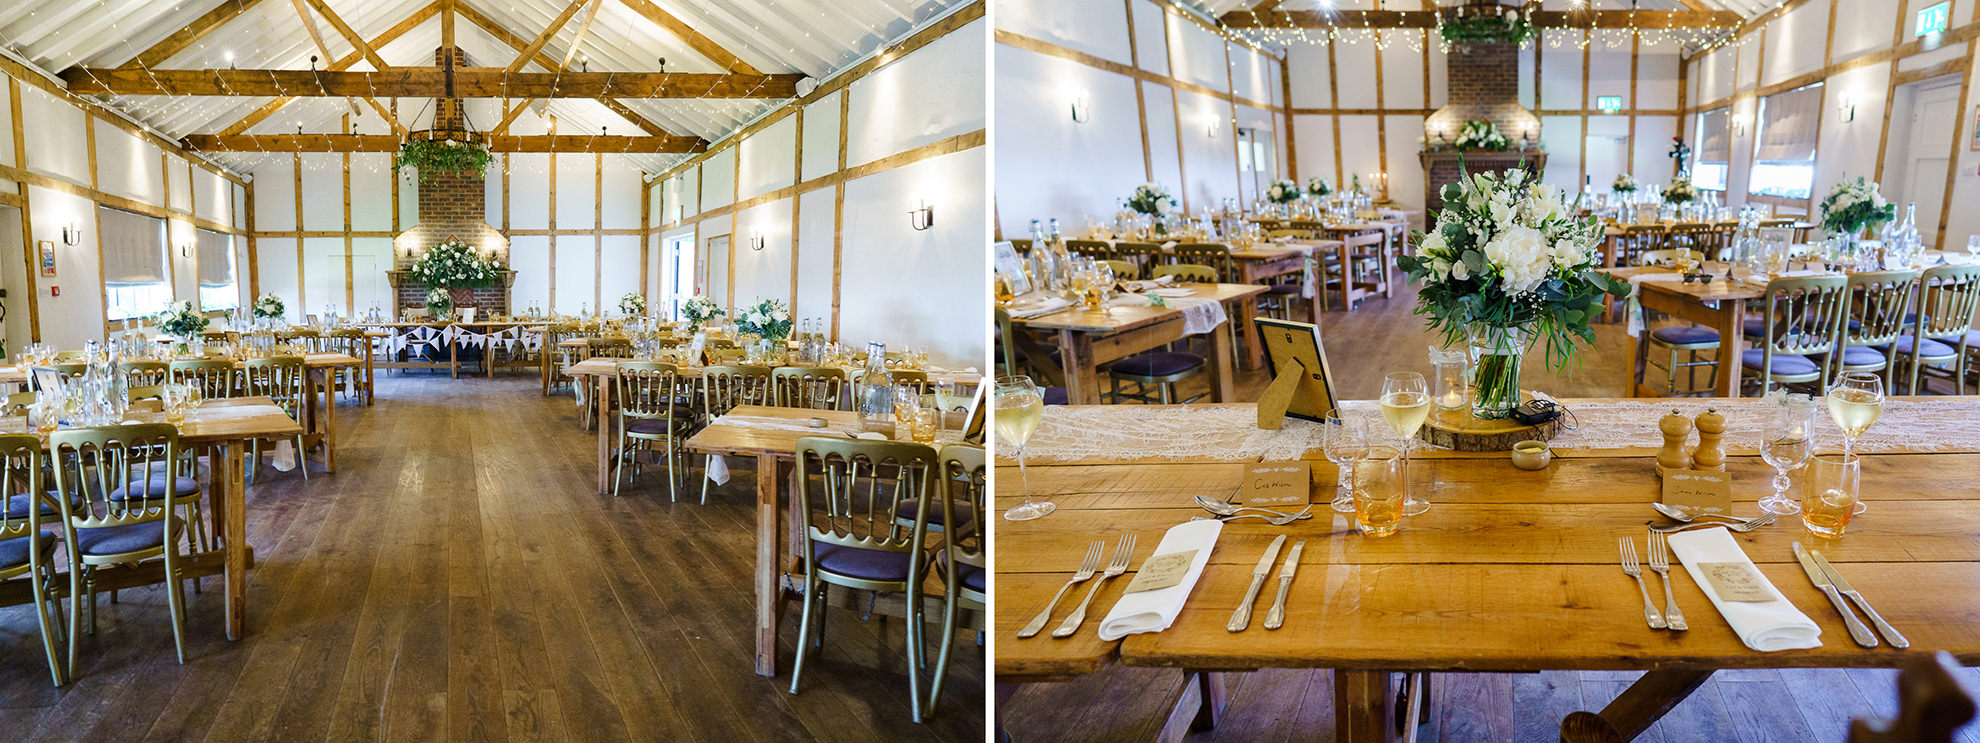 dyptich of the itnerior space of burley manor barn decorated for wedding reception dinner